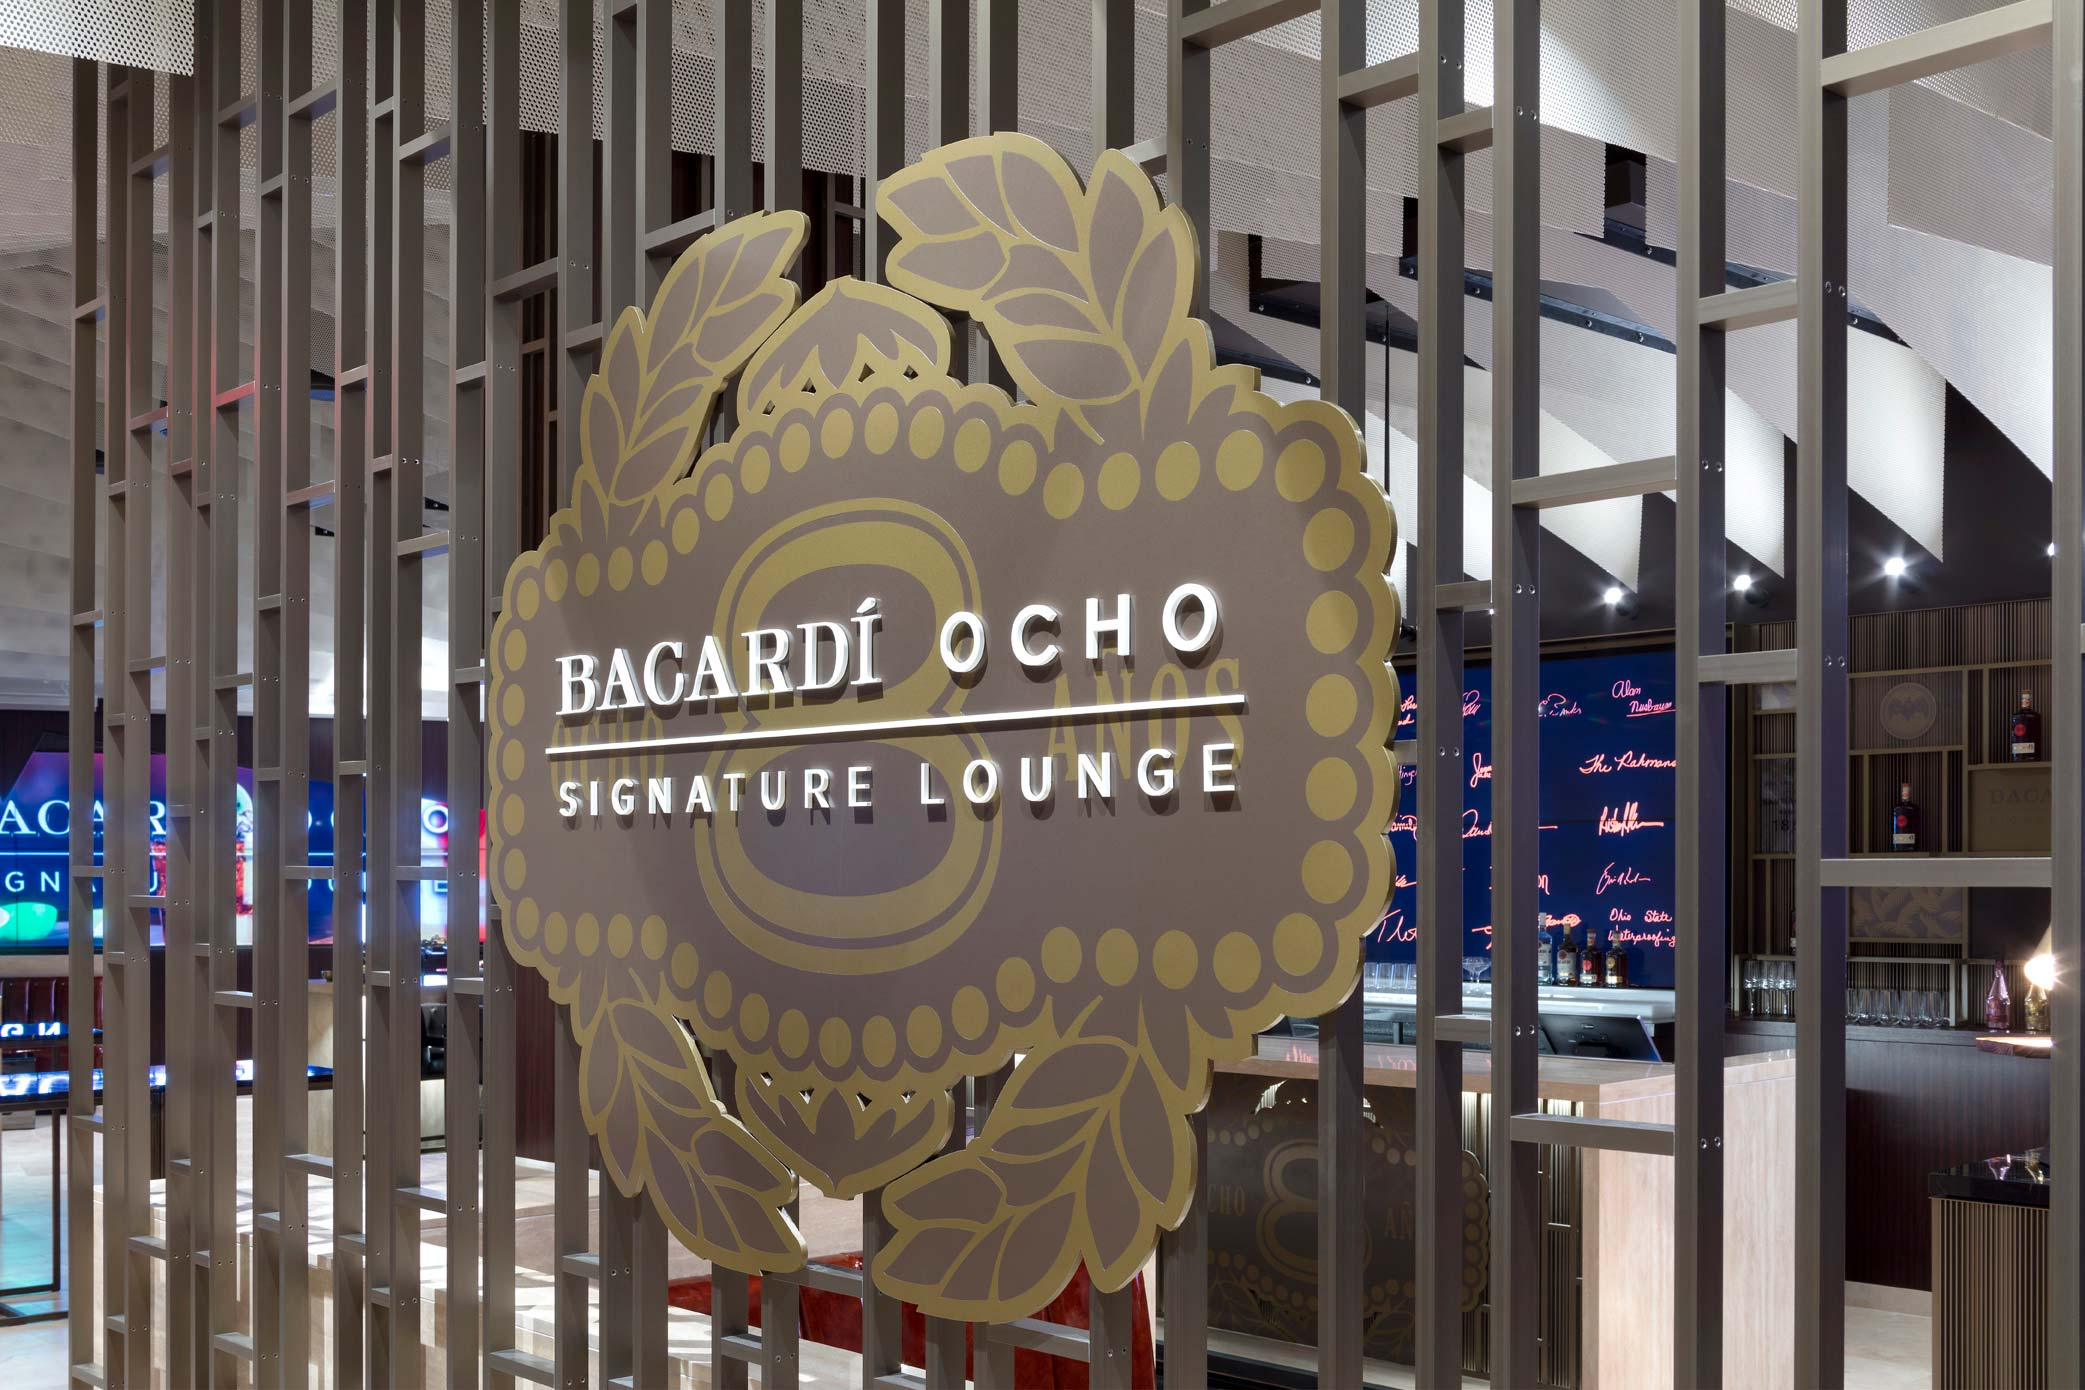 Bacardi Ocho Signature Lounge Entrance